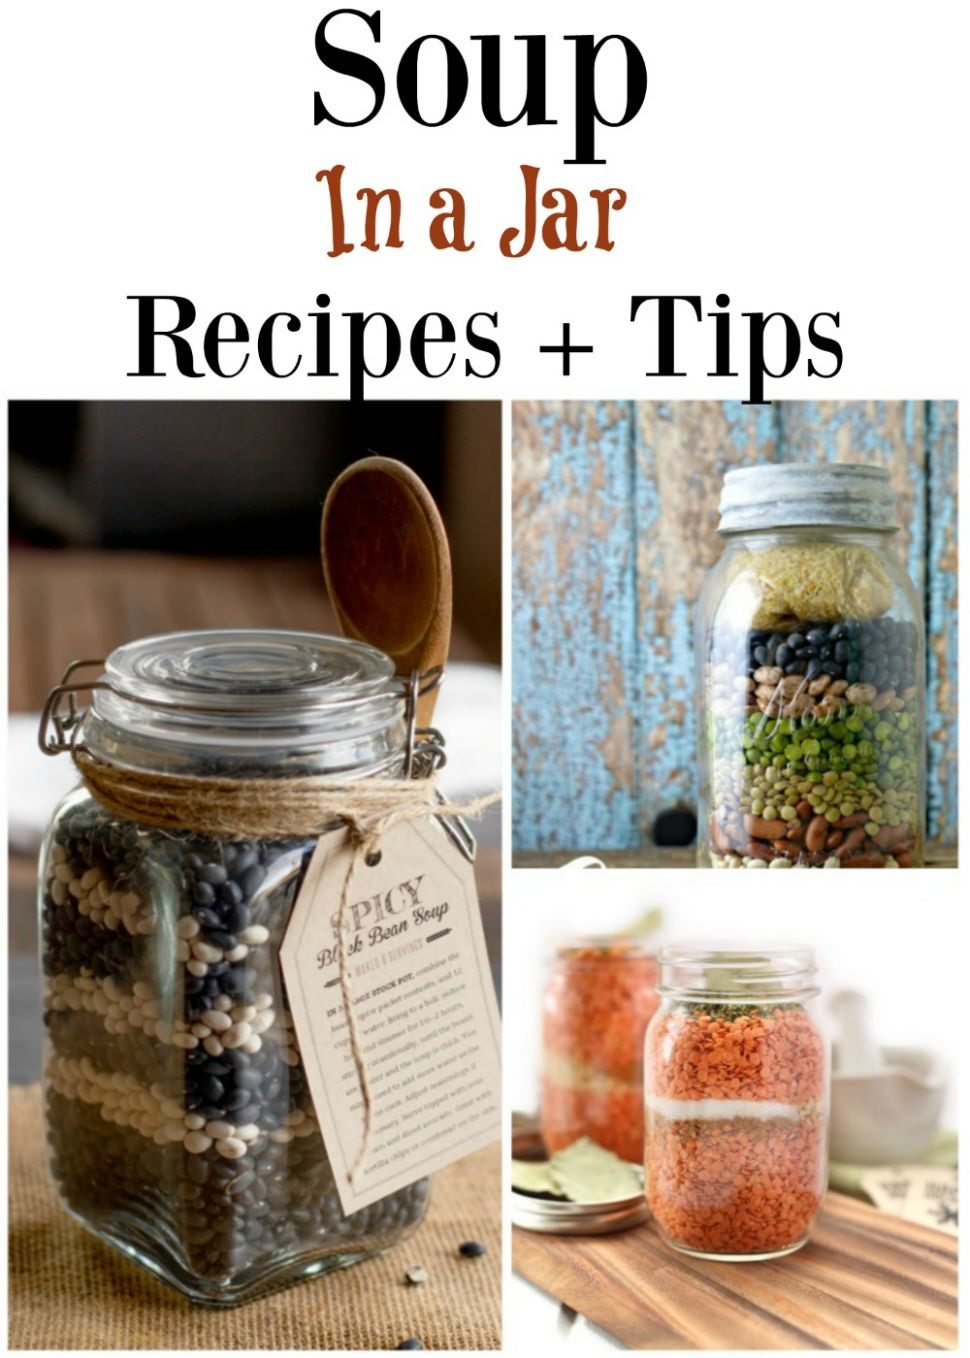 Soup in a Jar Recipes & Tips On How to Make Them! - Thrifty NW Mom